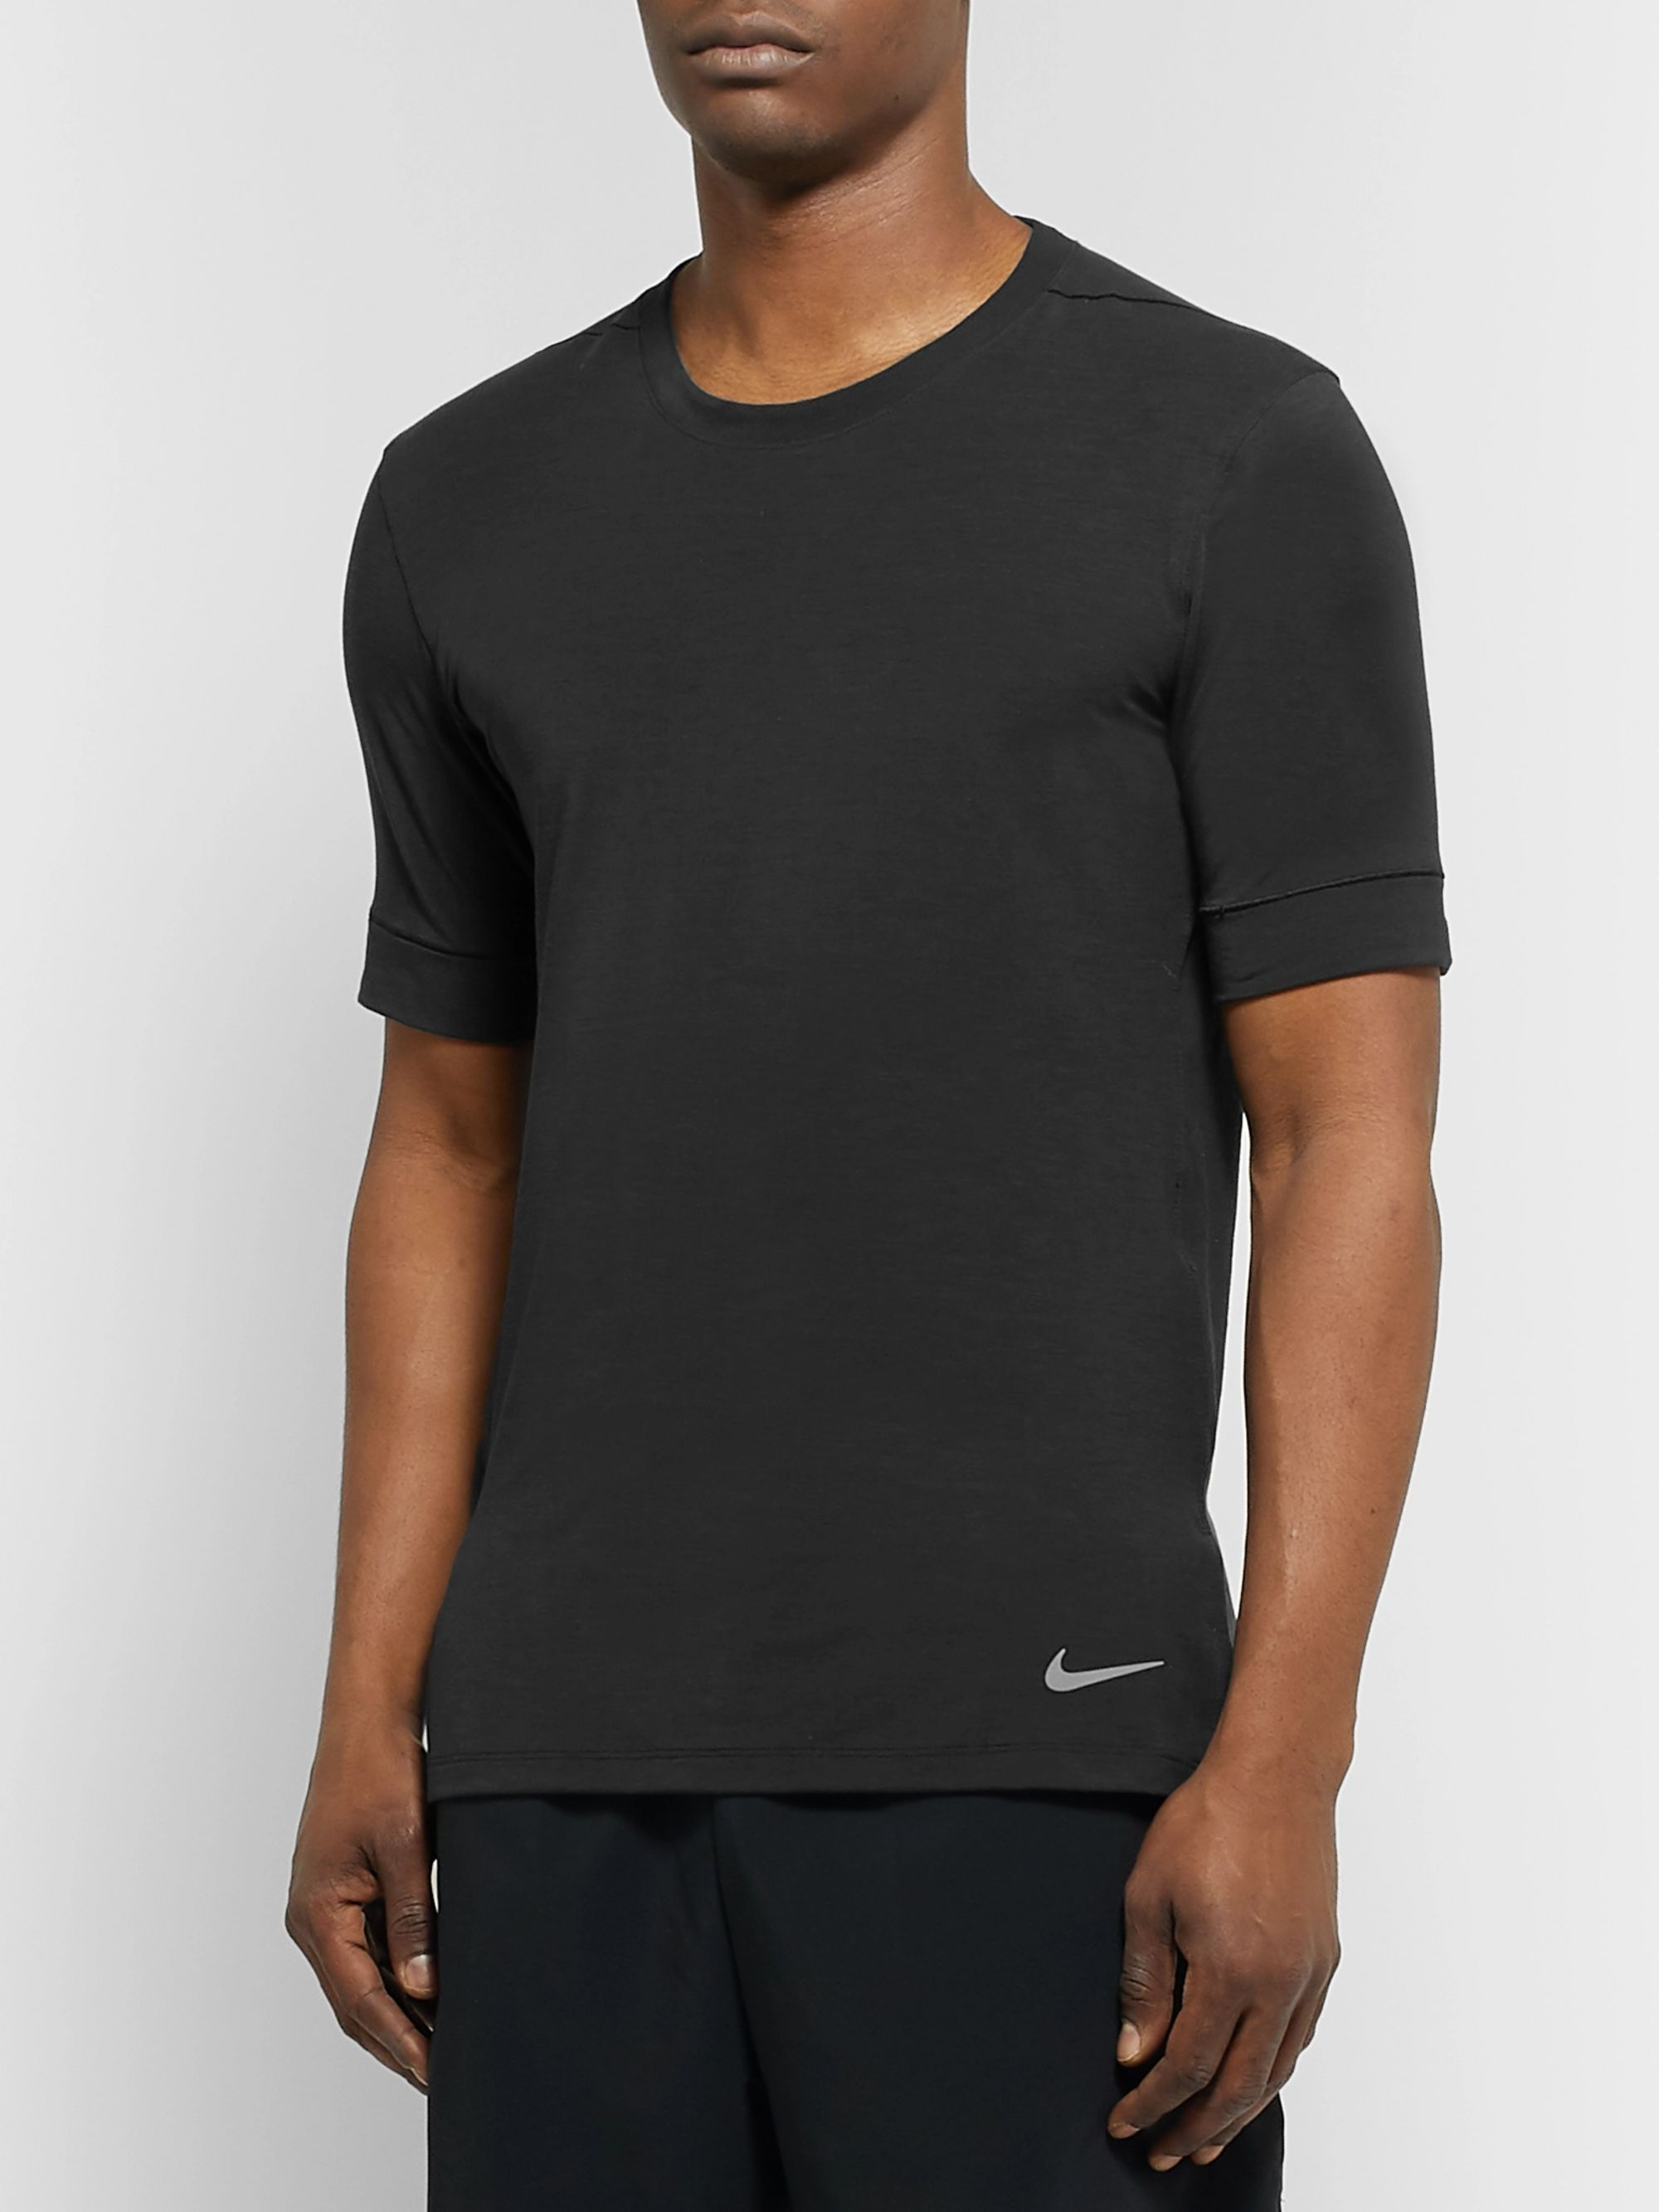 Nike Training Transcend Slim-Fit Dri-FIT Yoga T-Shirt